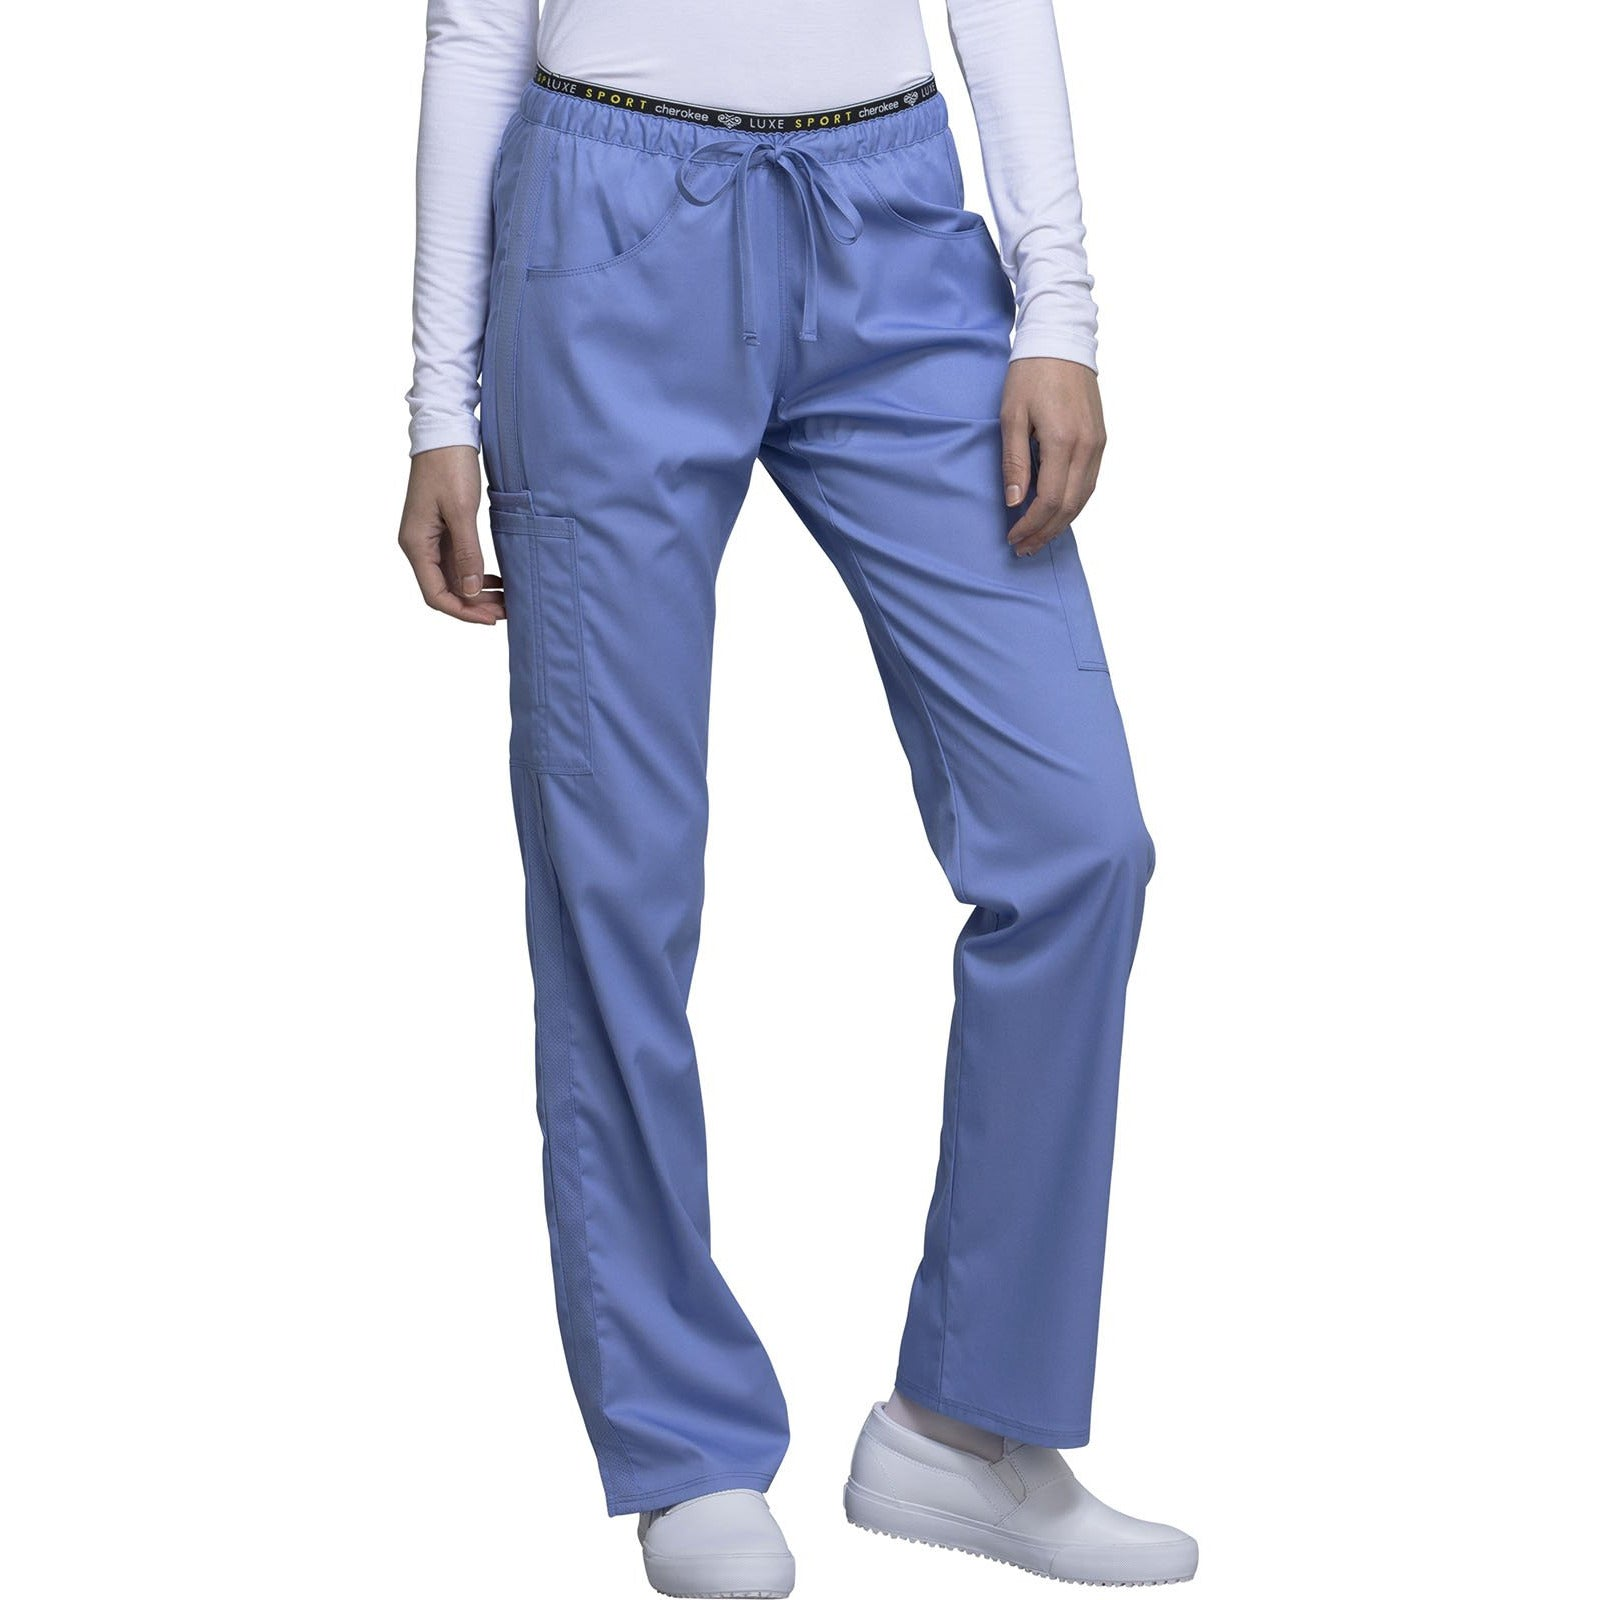 Mid Rise Straight Leg Pull-on Pant CK003 INSEAM 30.5""